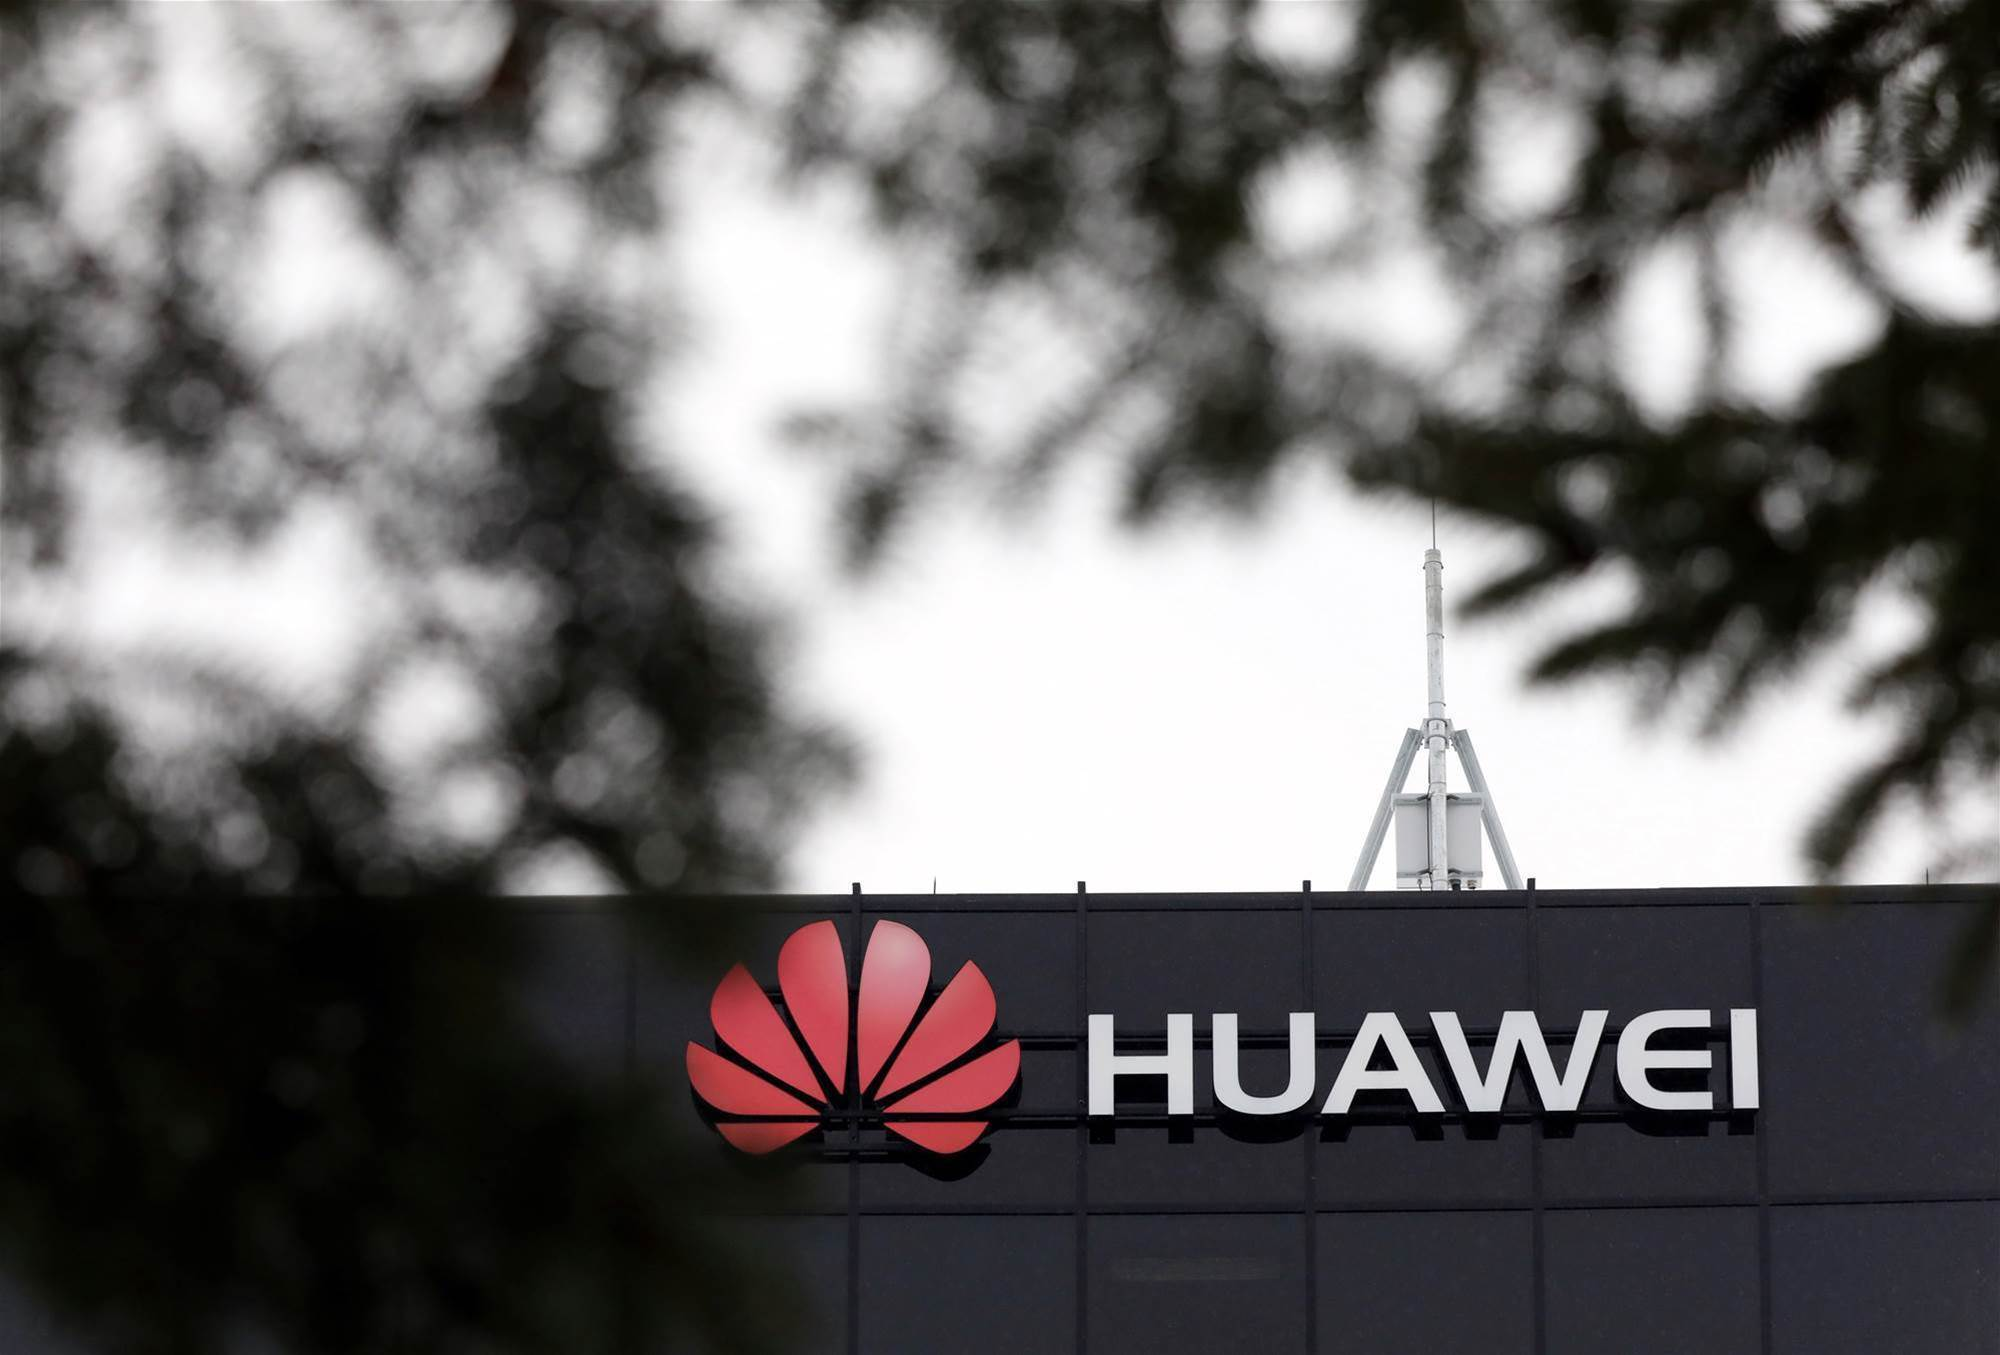 China says US should withdraw arrest warrant for Huawei executive